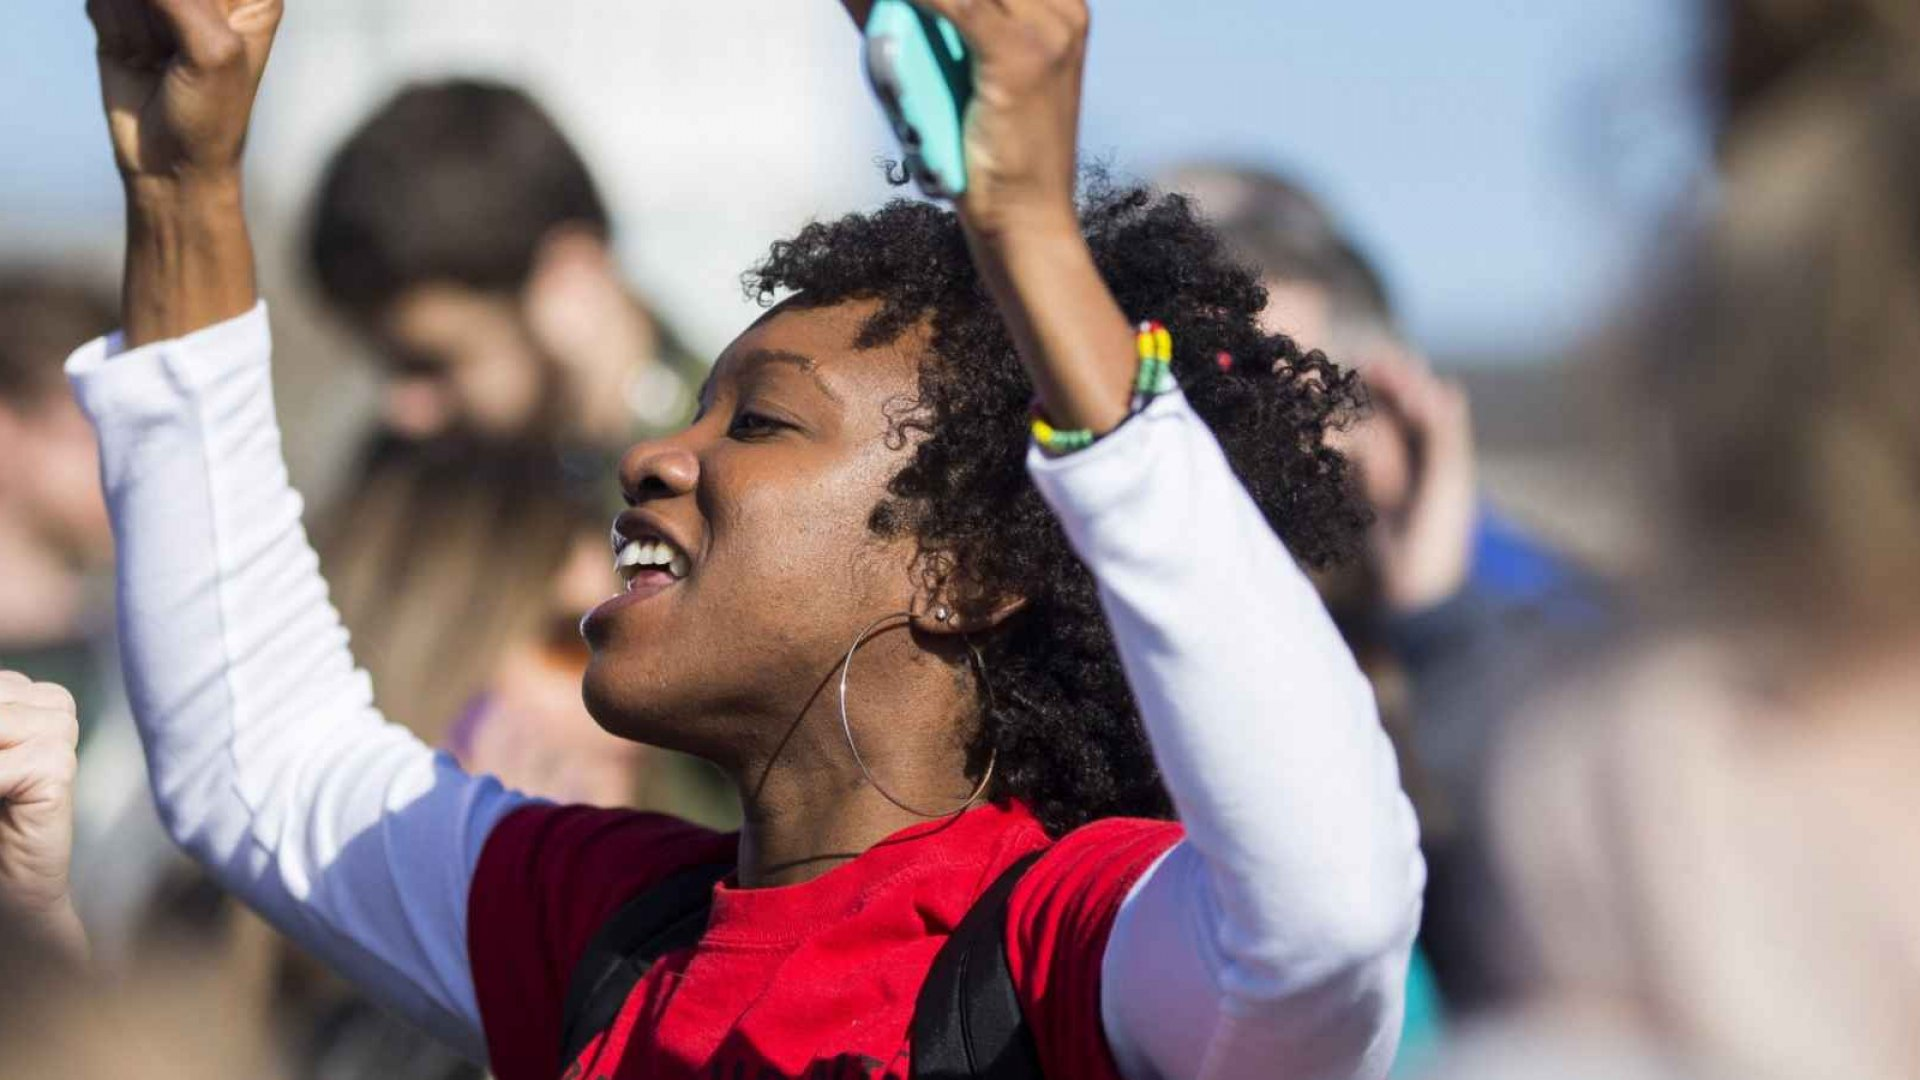 The announcement of University of Missouri president Tim Wolfe's resignation caused jubilation among protesting black students.